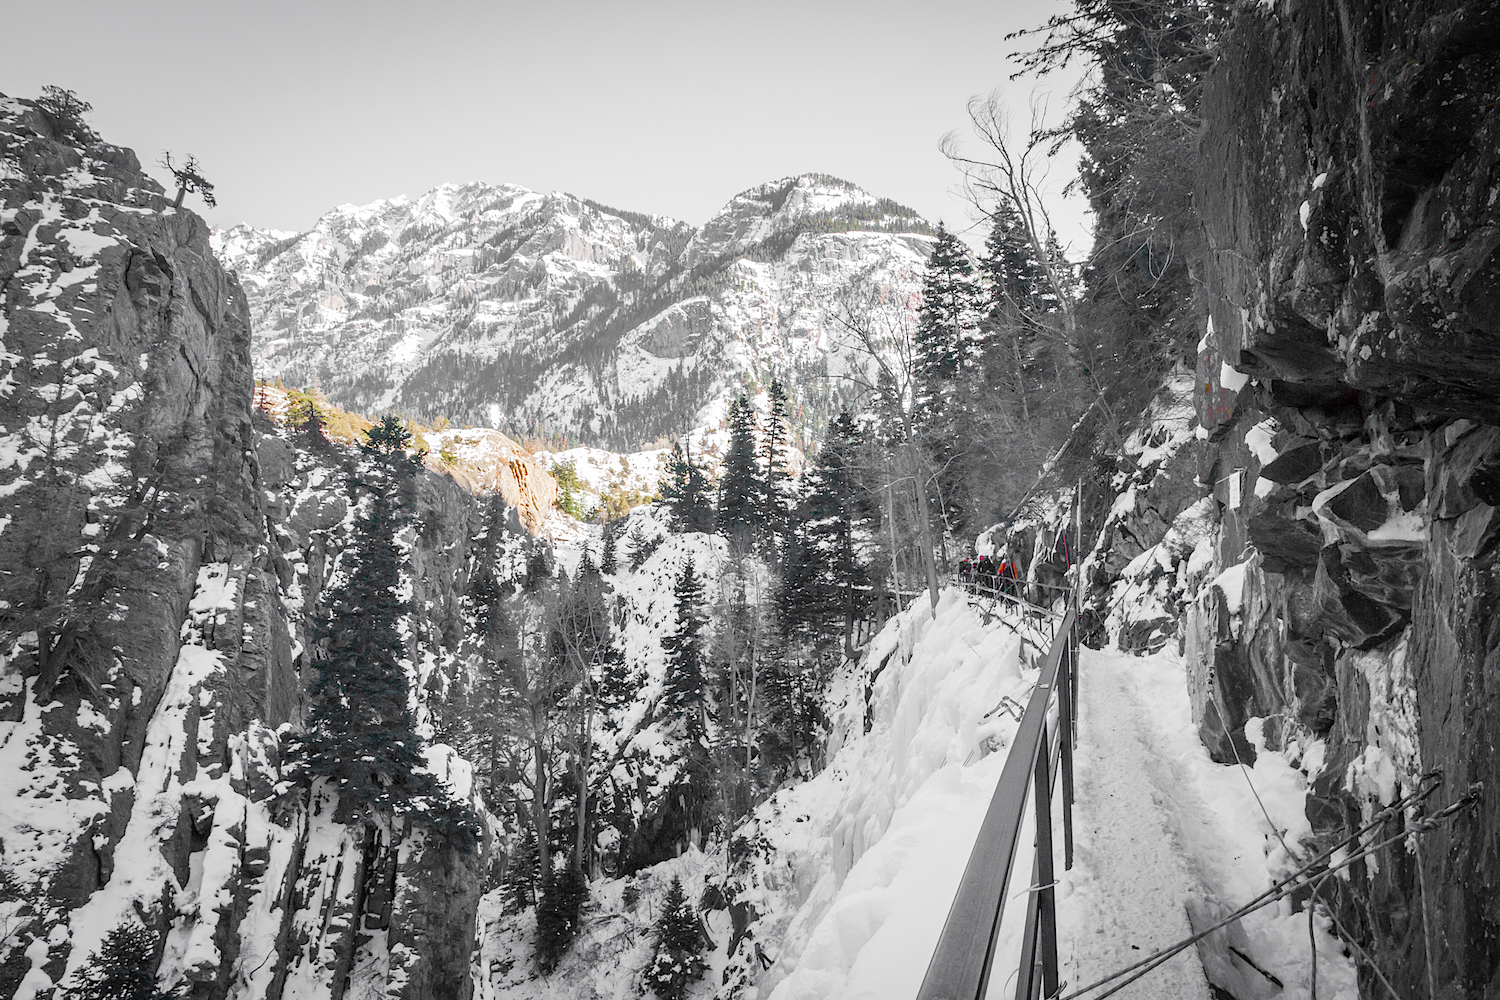 Ouray Ice Park, Image # 4551